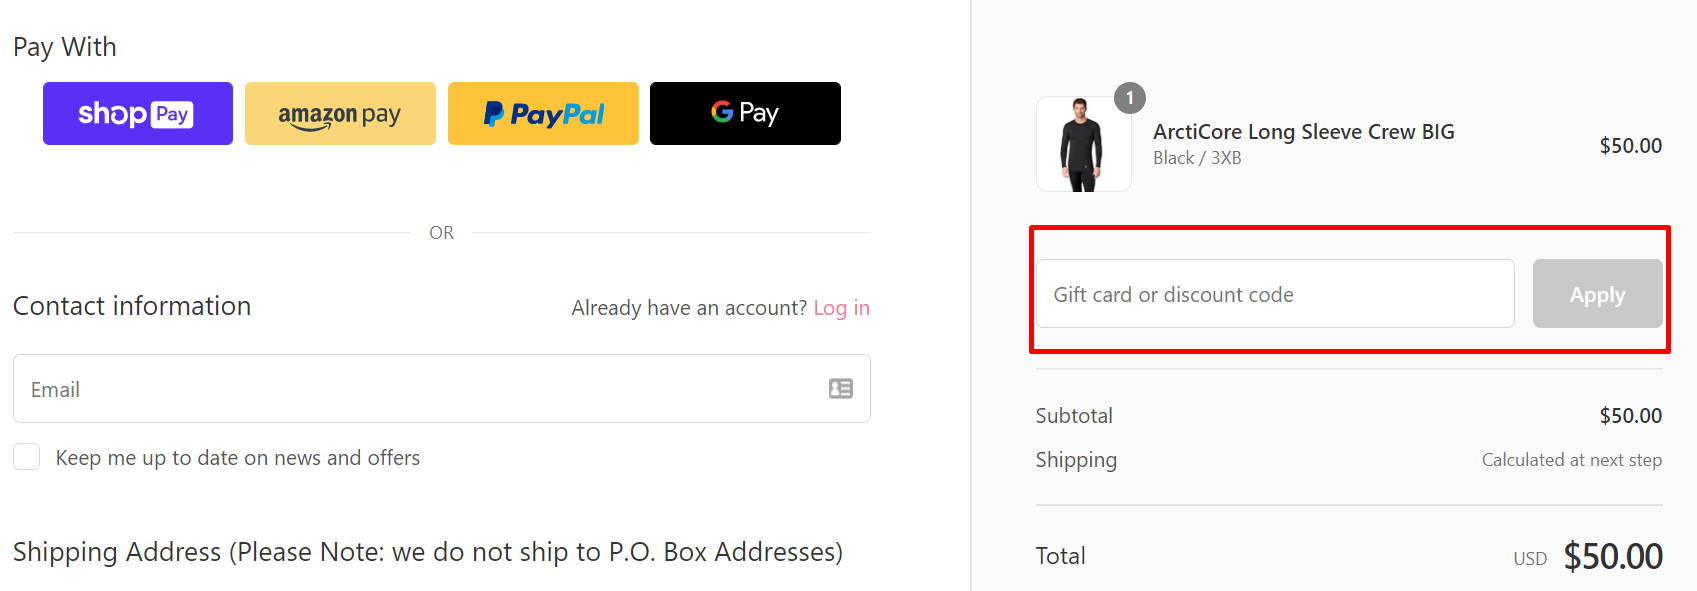 How do I use my Cuddl Duds discount code?